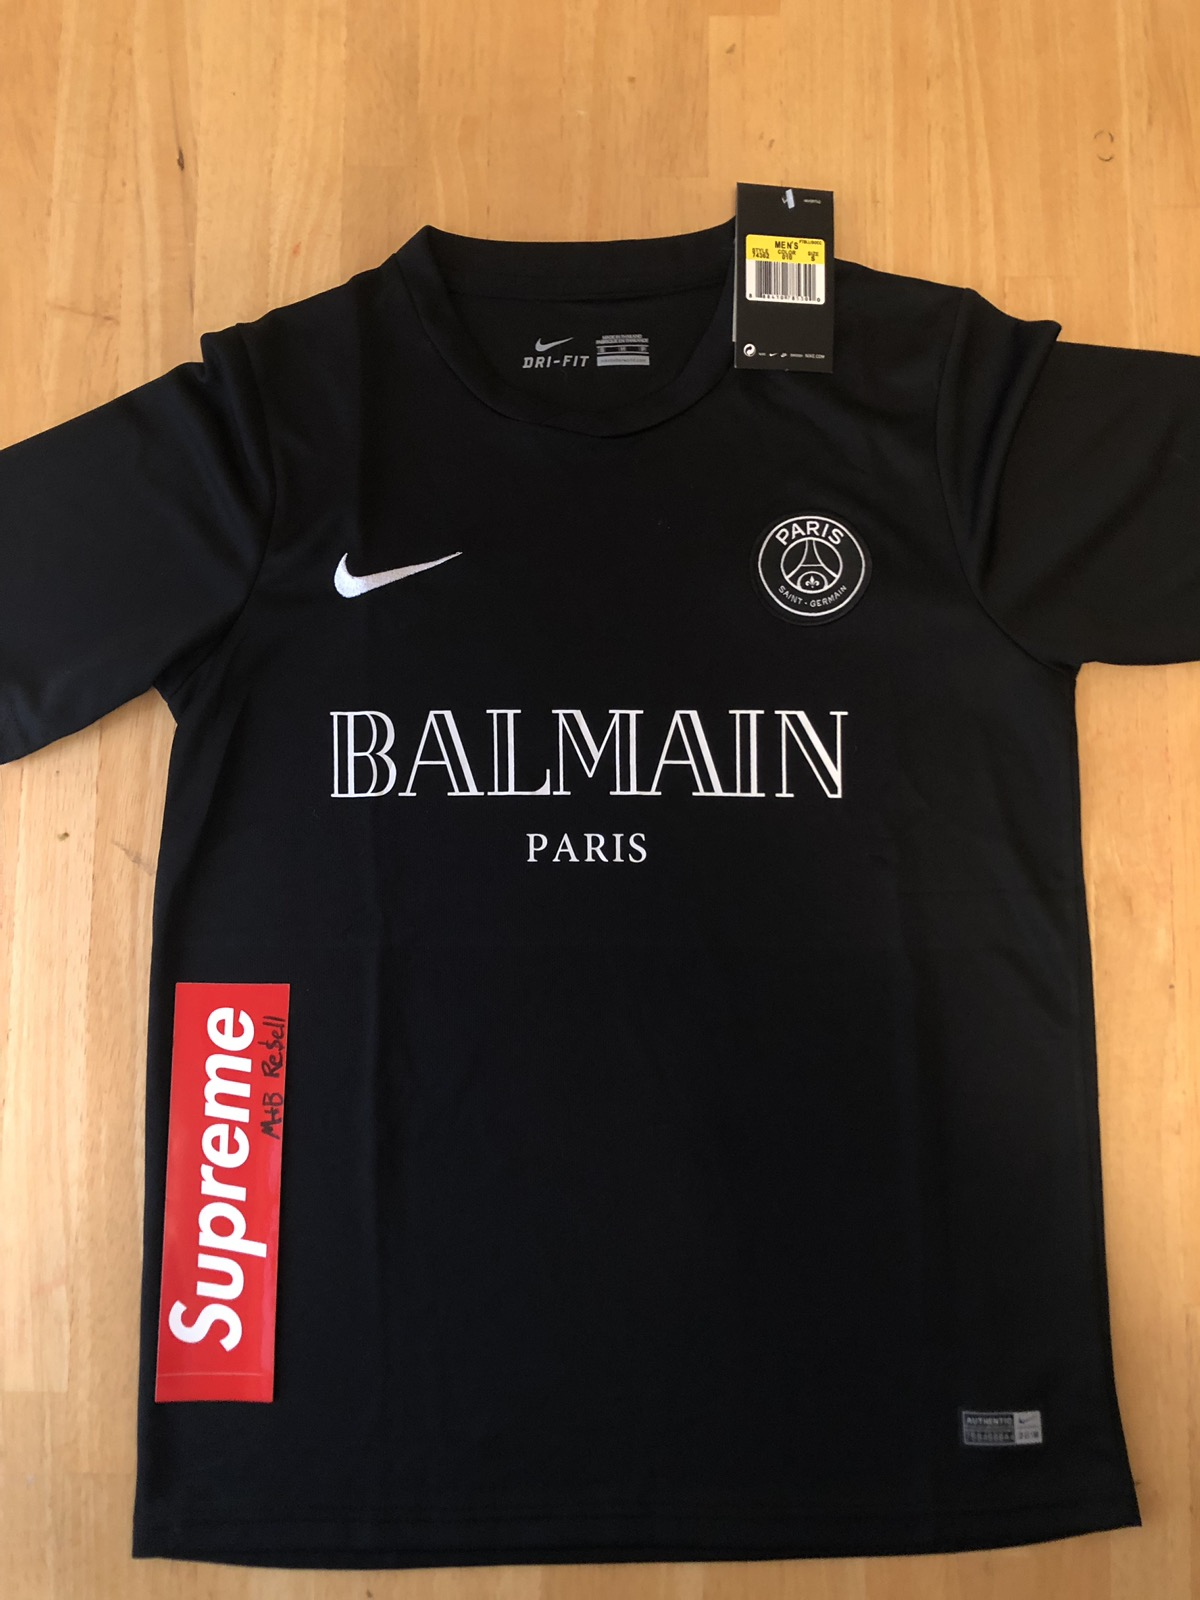 on sale f30c5 05d02 Nike Paris Saint Germain x Balmain Jersey